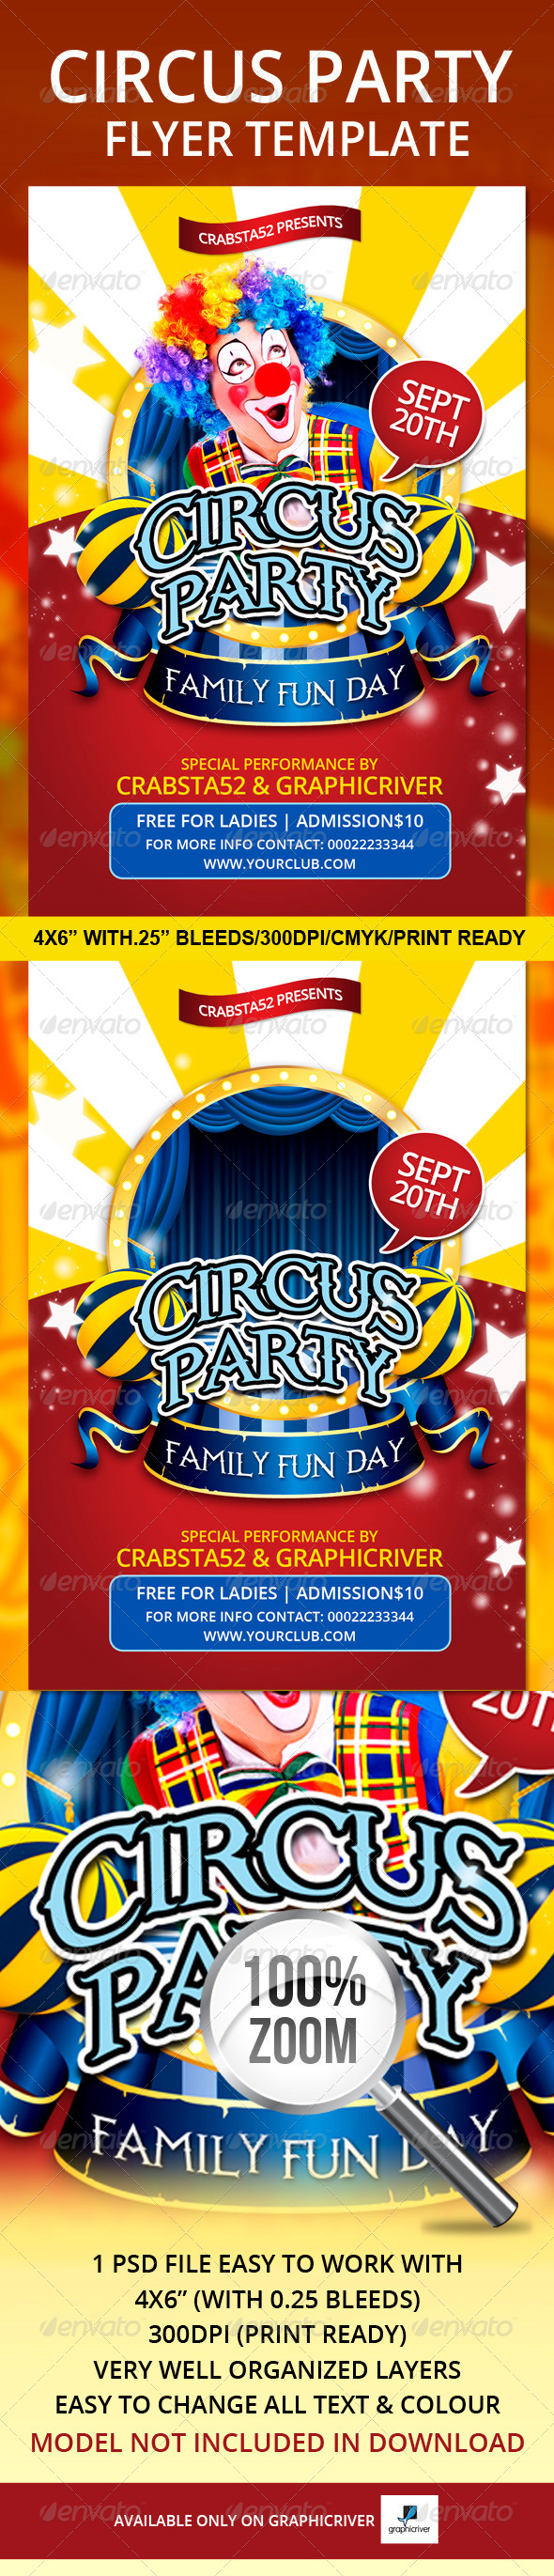 Circus Party Flyer Template  - Events Flyers